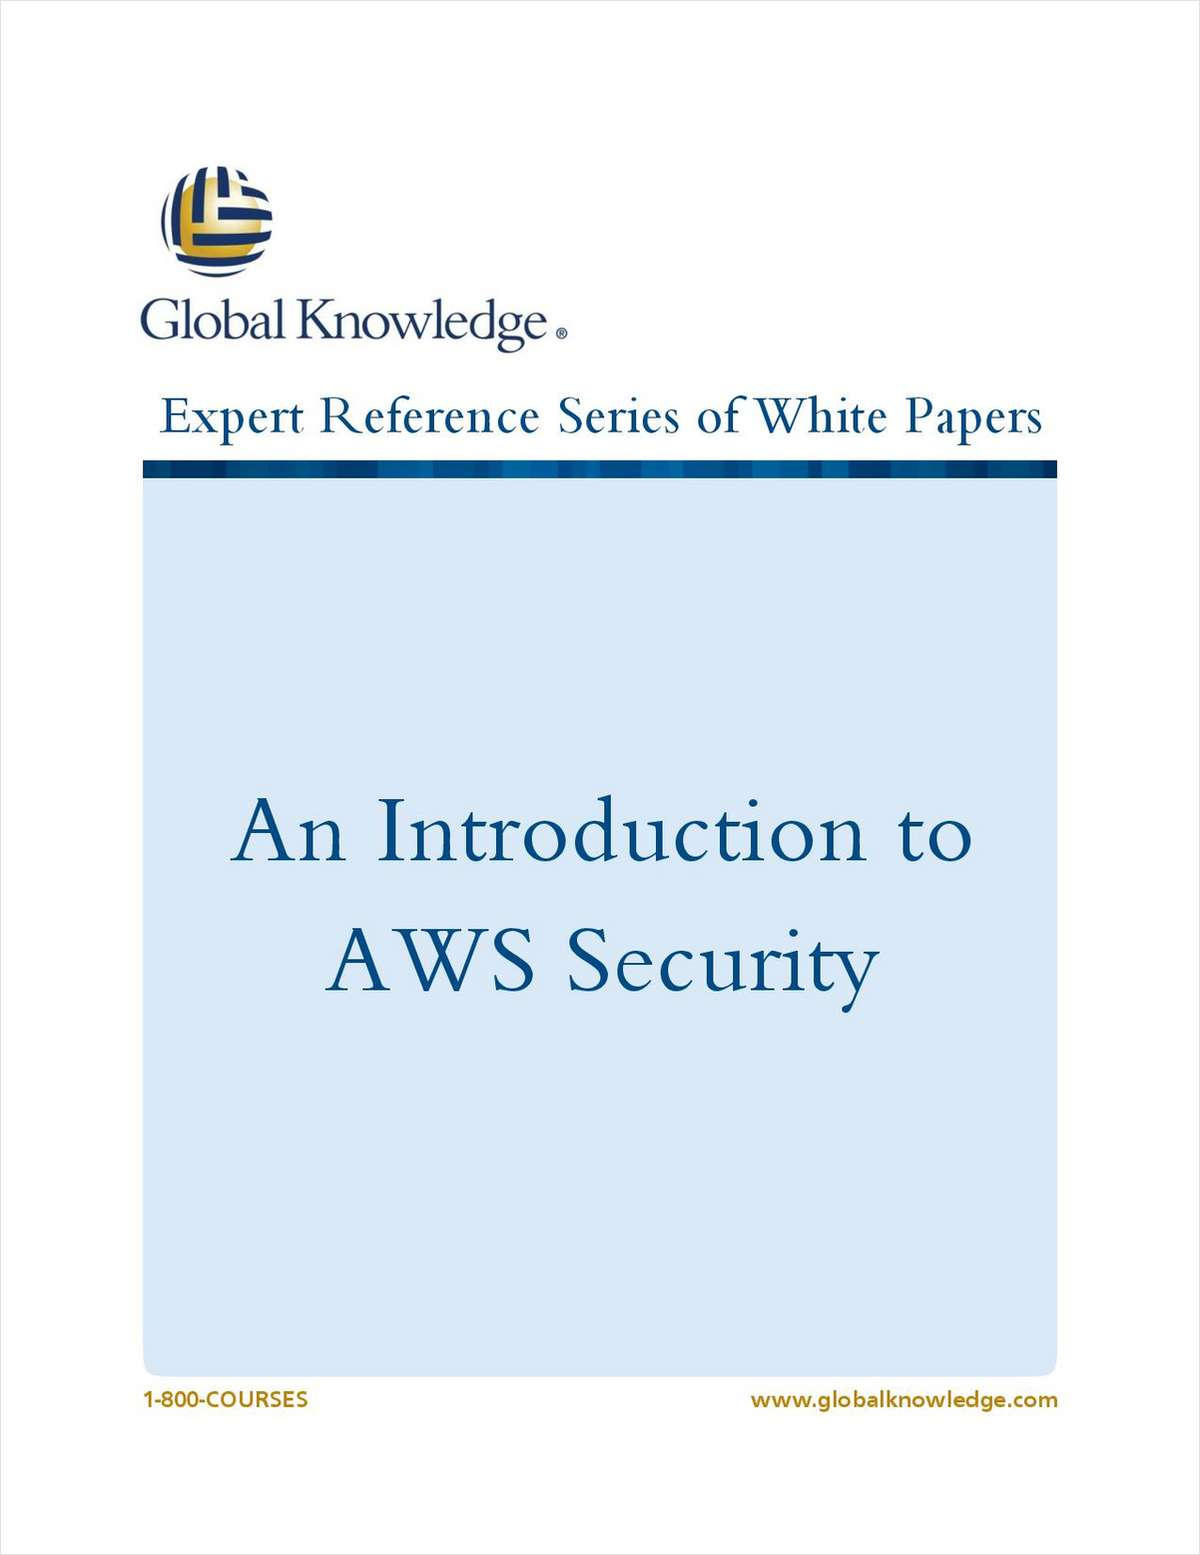 An Introduction to AWS Security